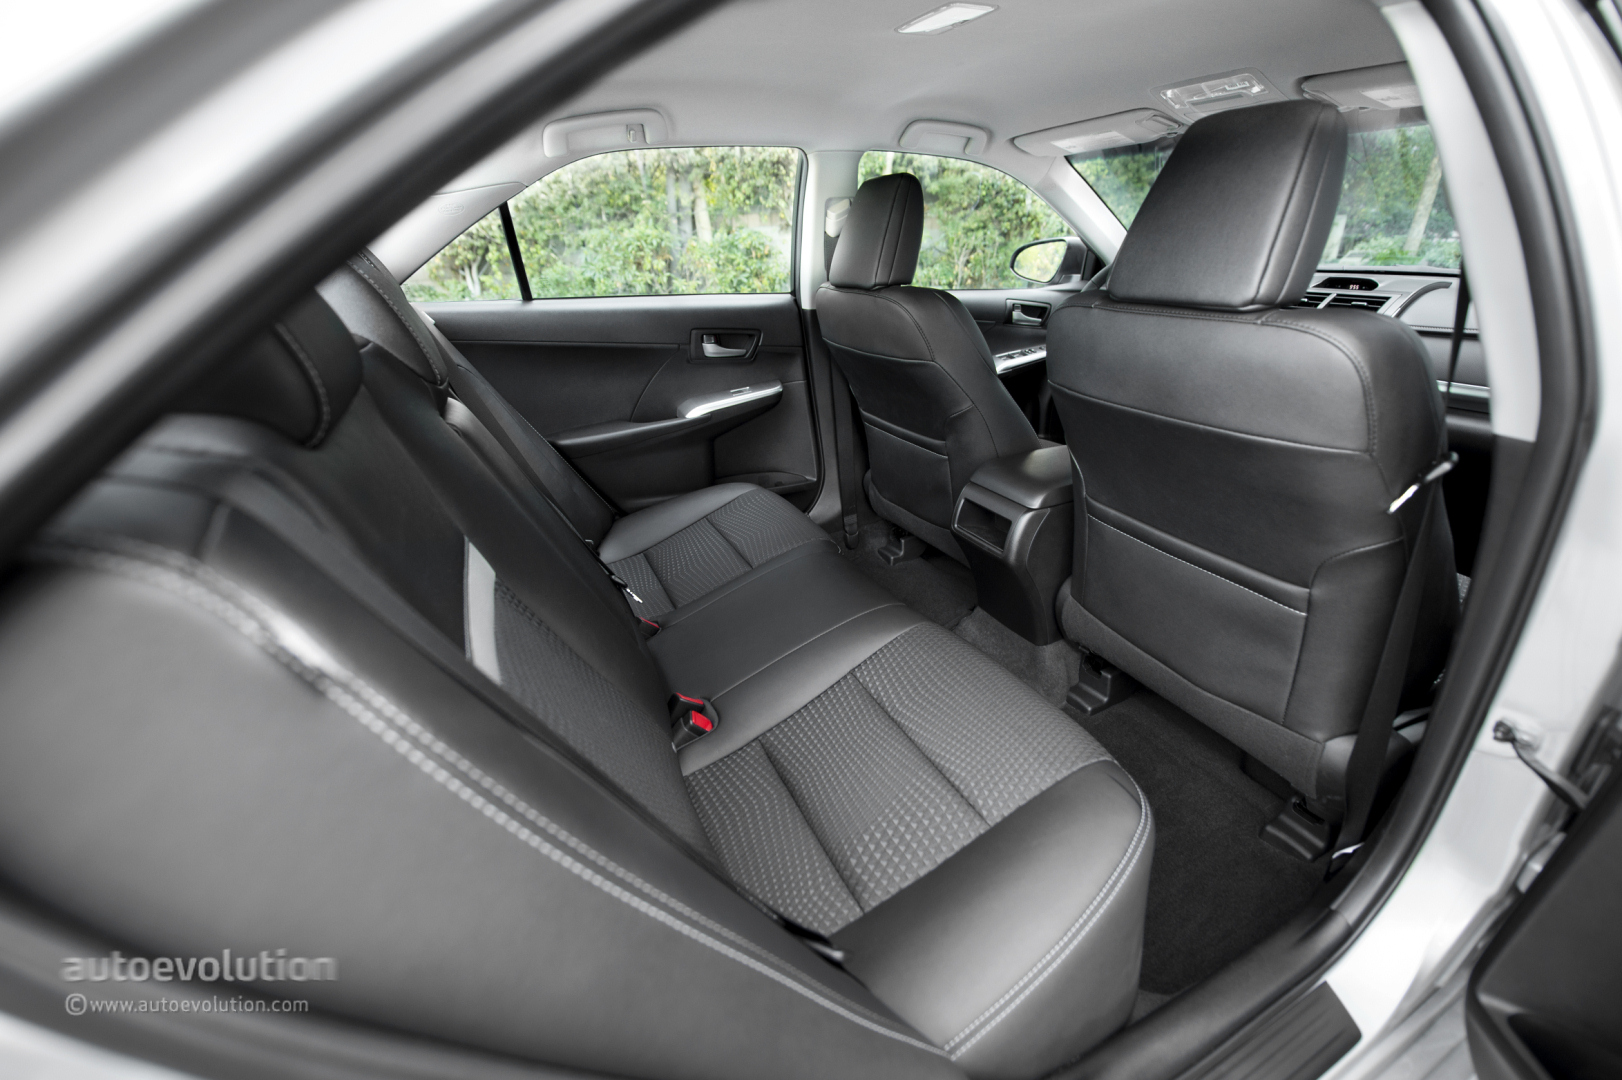 Image Result For Our Car Auto